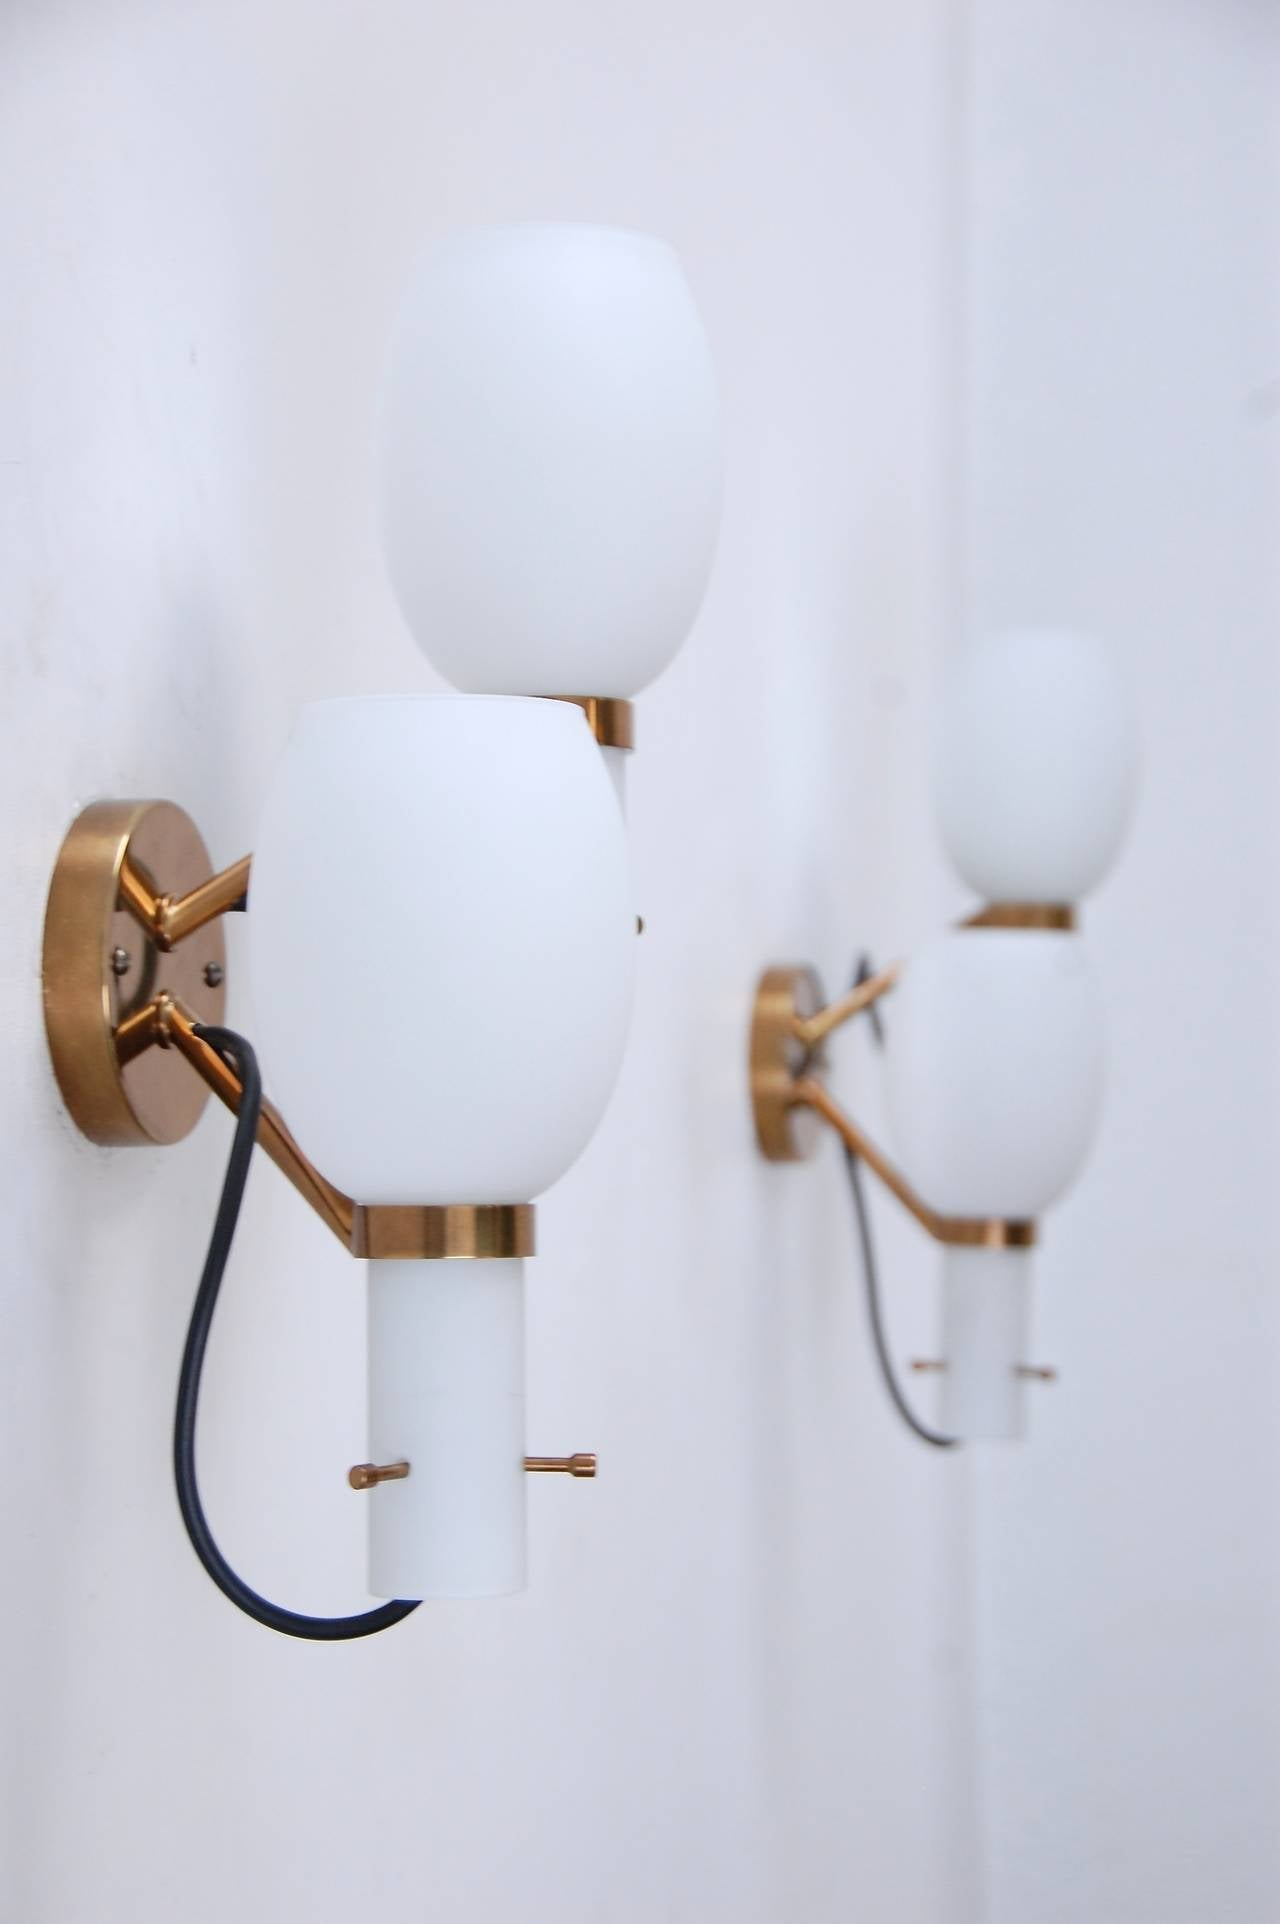 Graceful and stylish Stilnovo wall sconces from Italy. 1950s design with patina lacquered brass finish and handblown glass shades. Wired for use in the US.